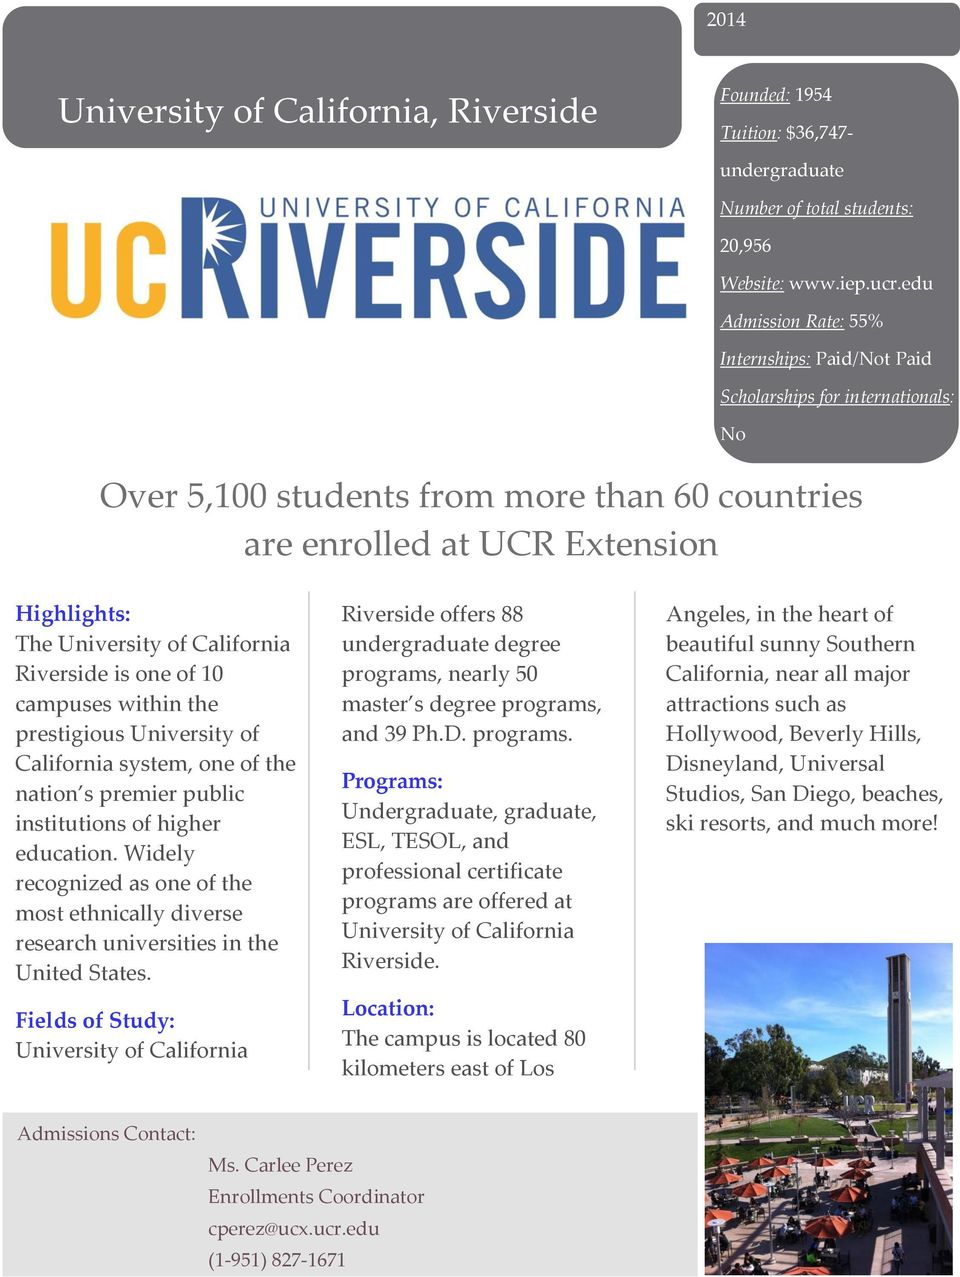 campuses within the prestigious University of California system, one of the nation s premier public institutions of higher education.